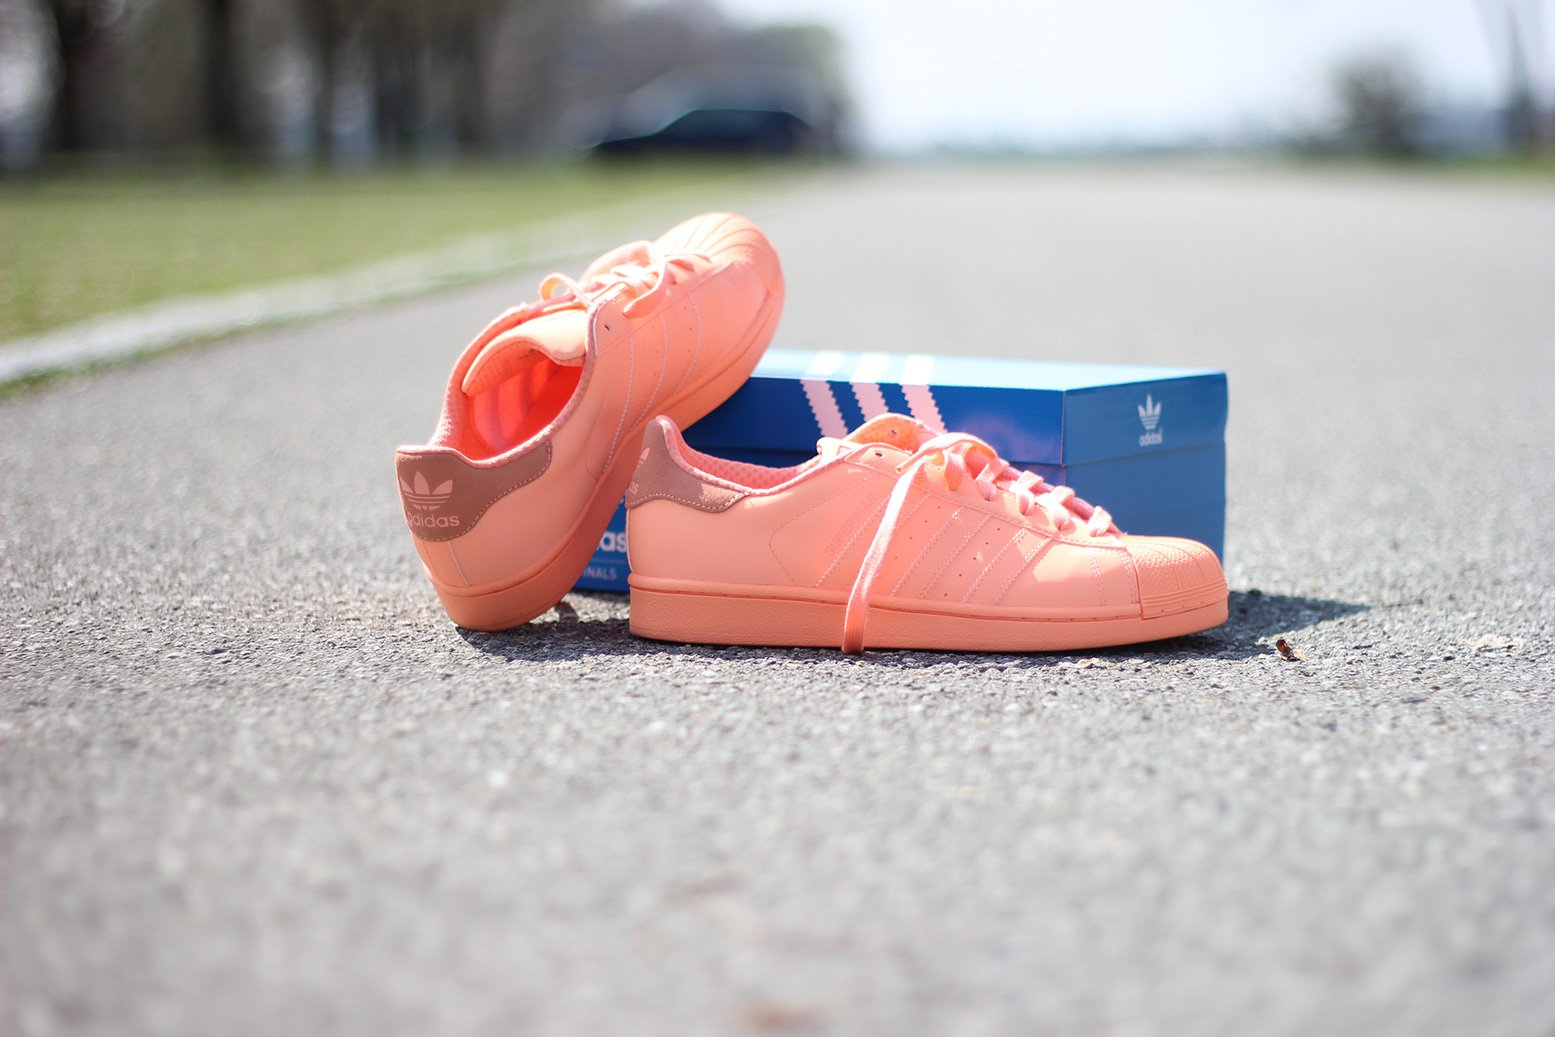 Adidas Superstars, Sneakers, sunglow, hellblau, streifen, Hut